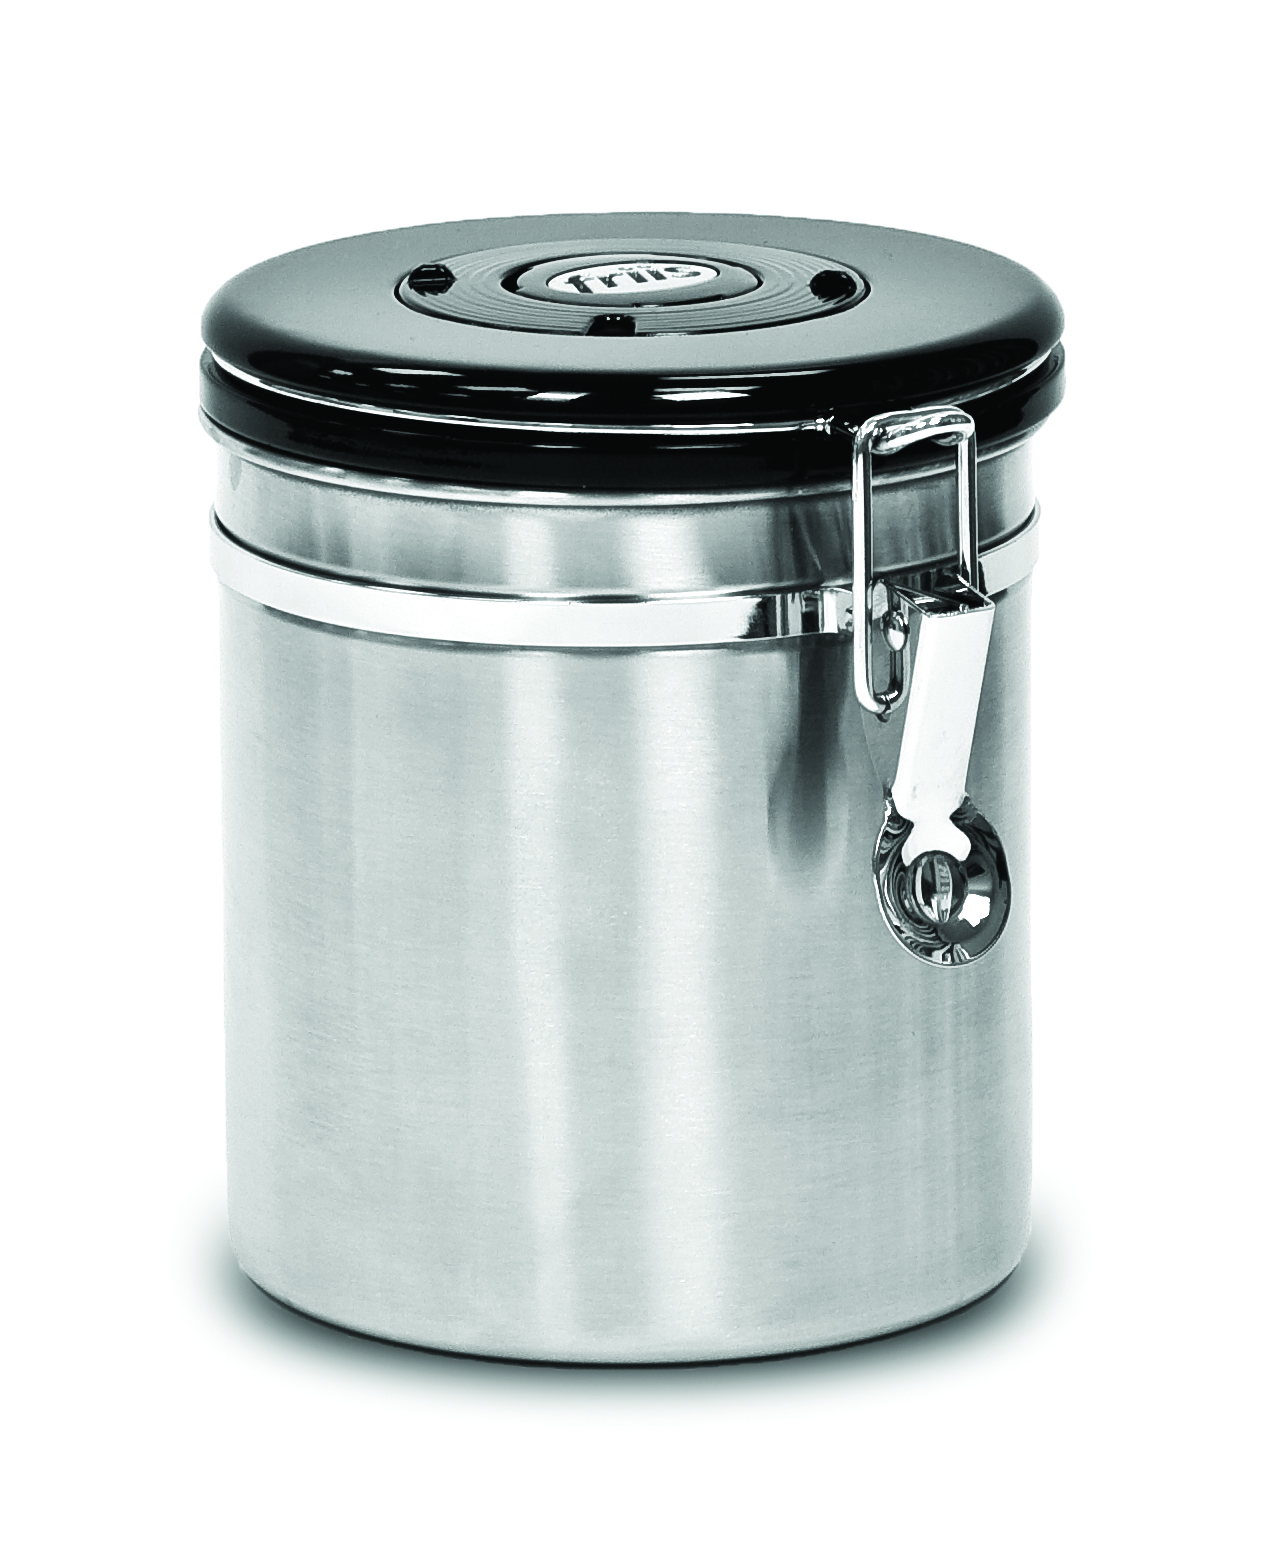 Friis Coffee Vault Stainless Steel Image